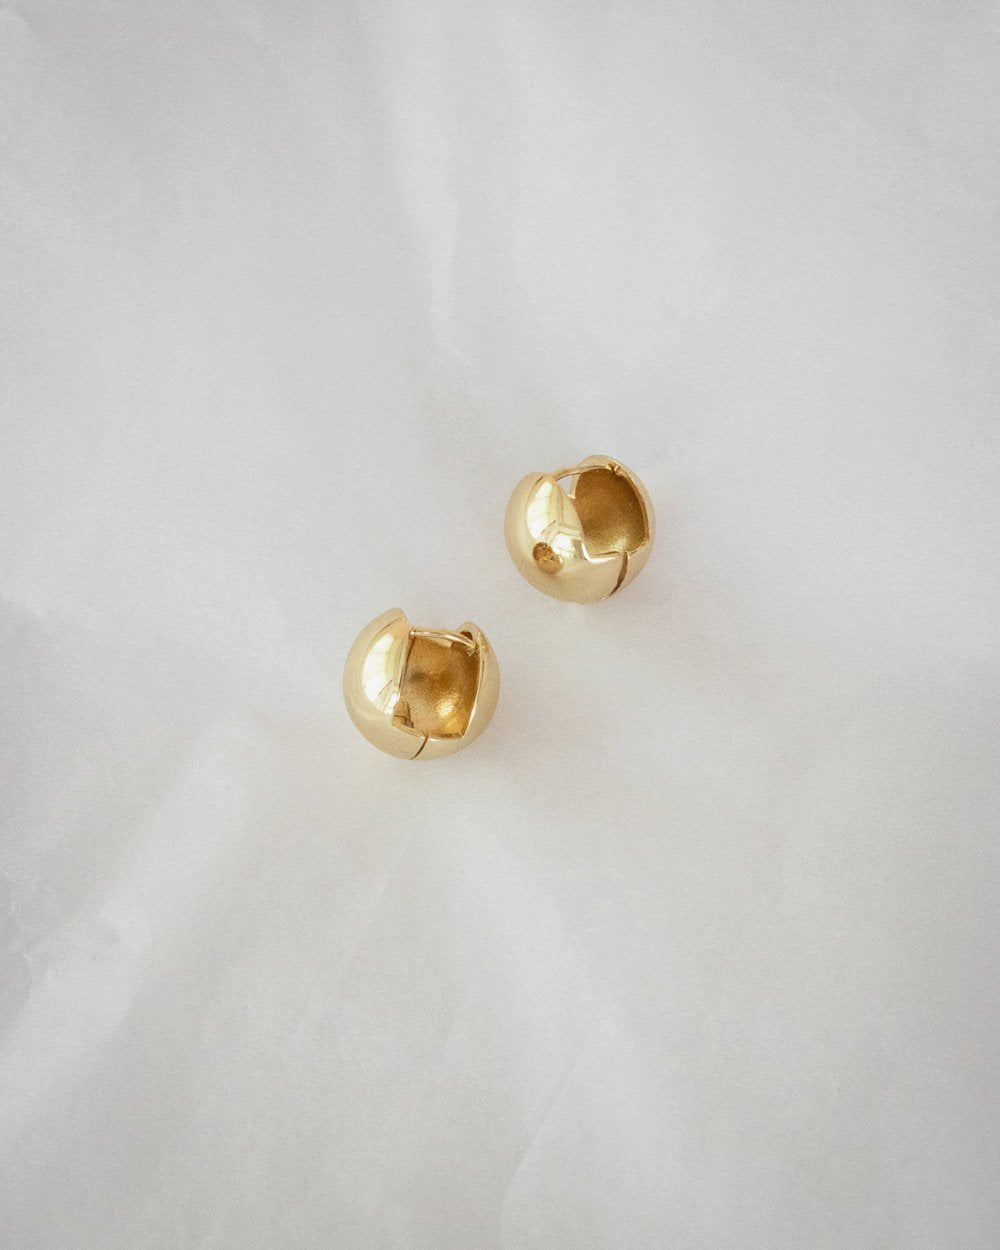 Spherical ball shaped earrings by The Hexad